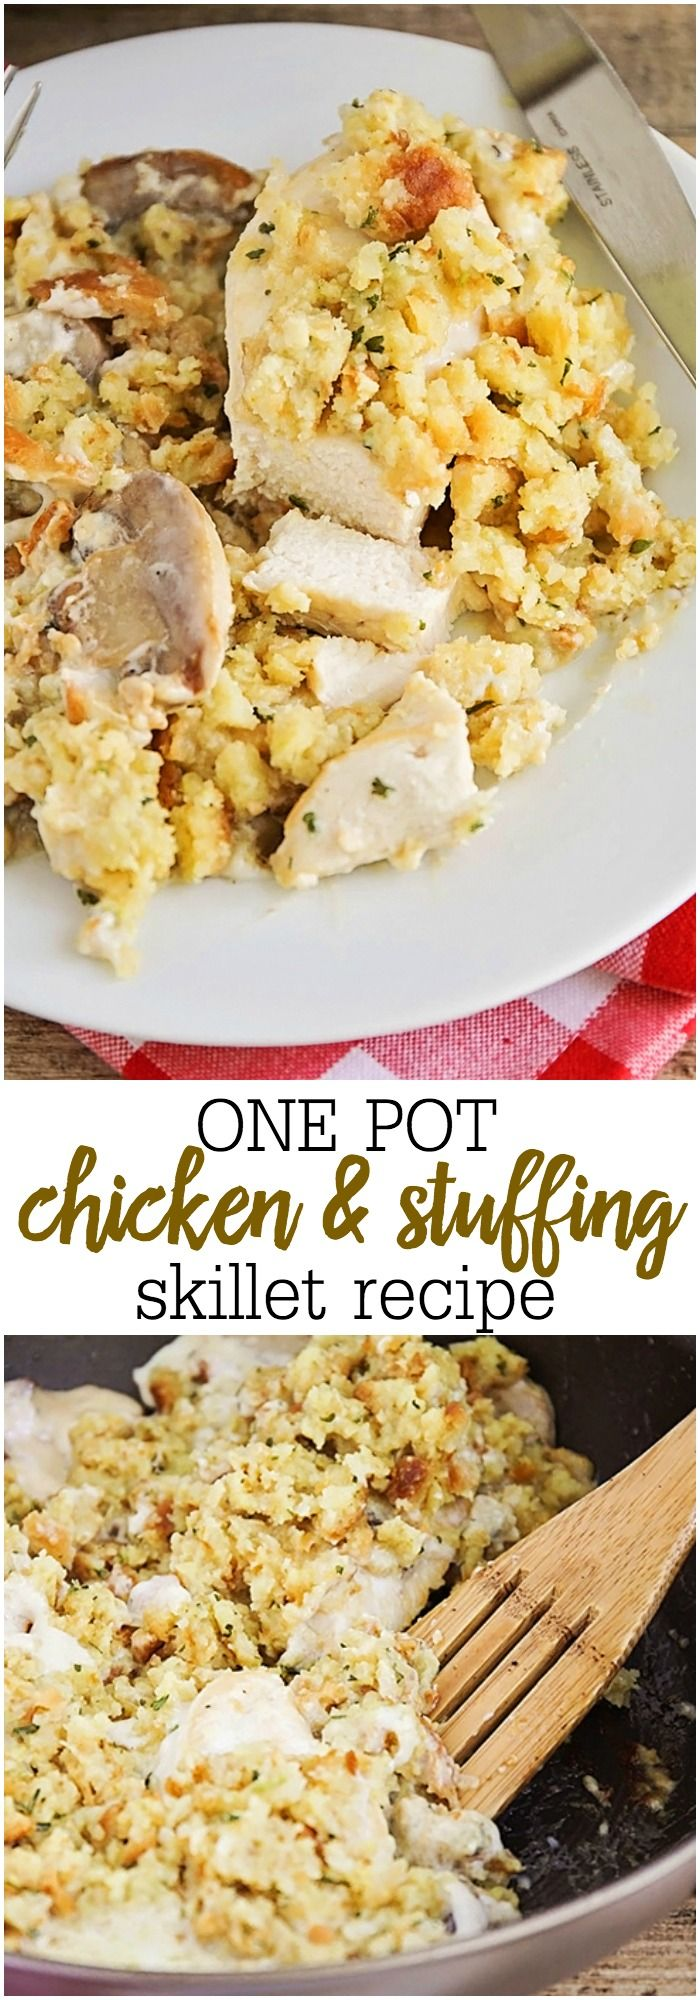 One Pot Chicken and Stuffing Skillet - a DELICIOUS and flavorful combination of chicken, stuffing, and mushrooms all in one pot! A new favorite (and ultra easy!!) dinner recipe!